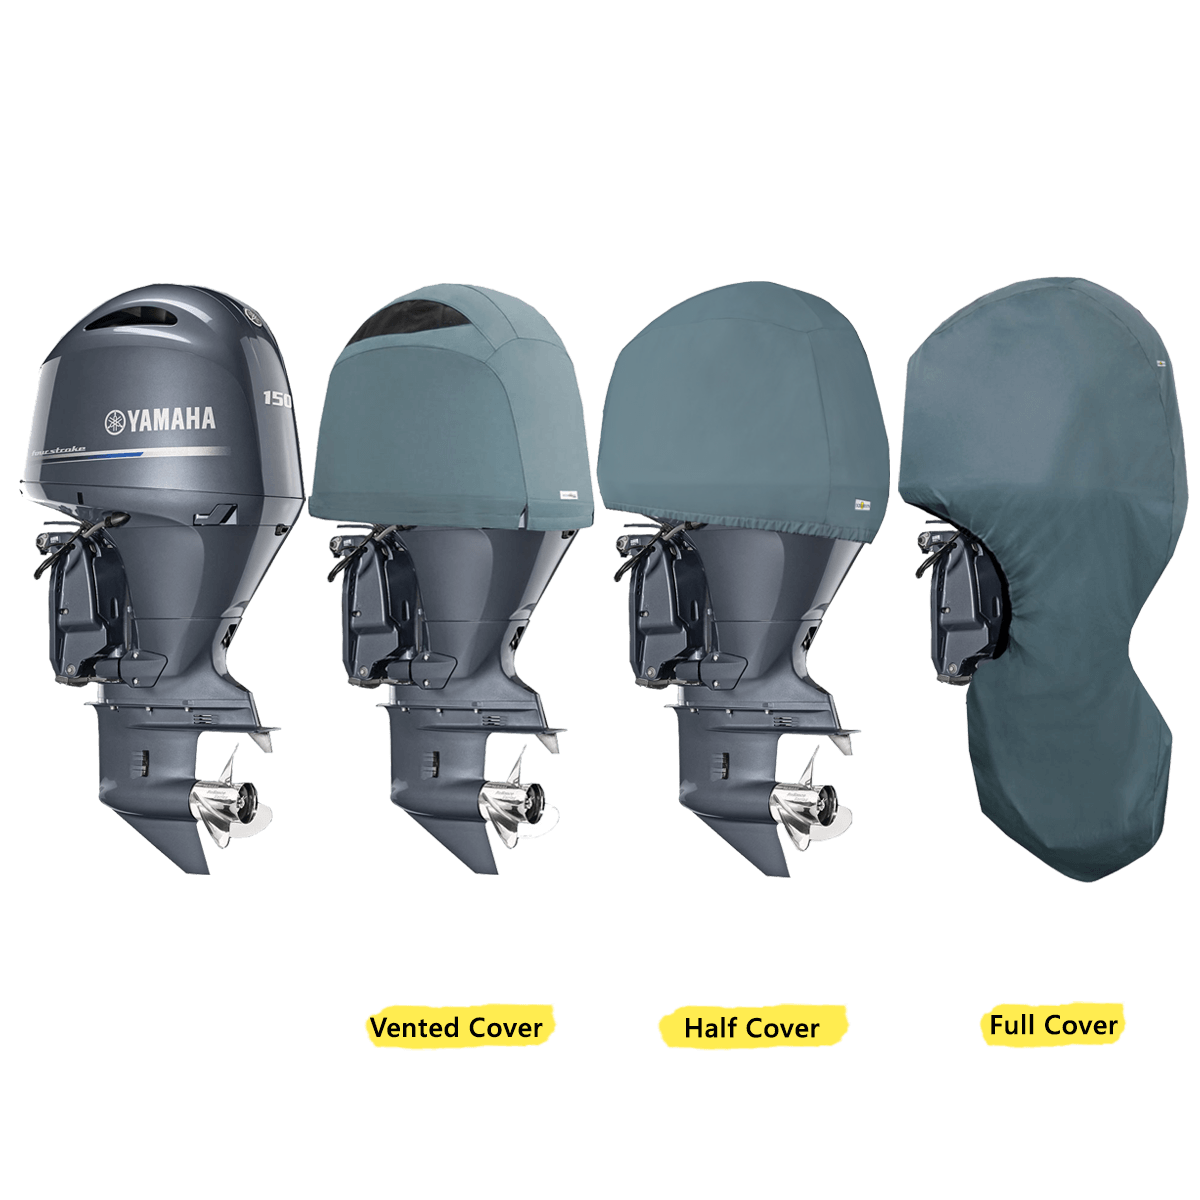 Covers for Yamaha Outboard Motors